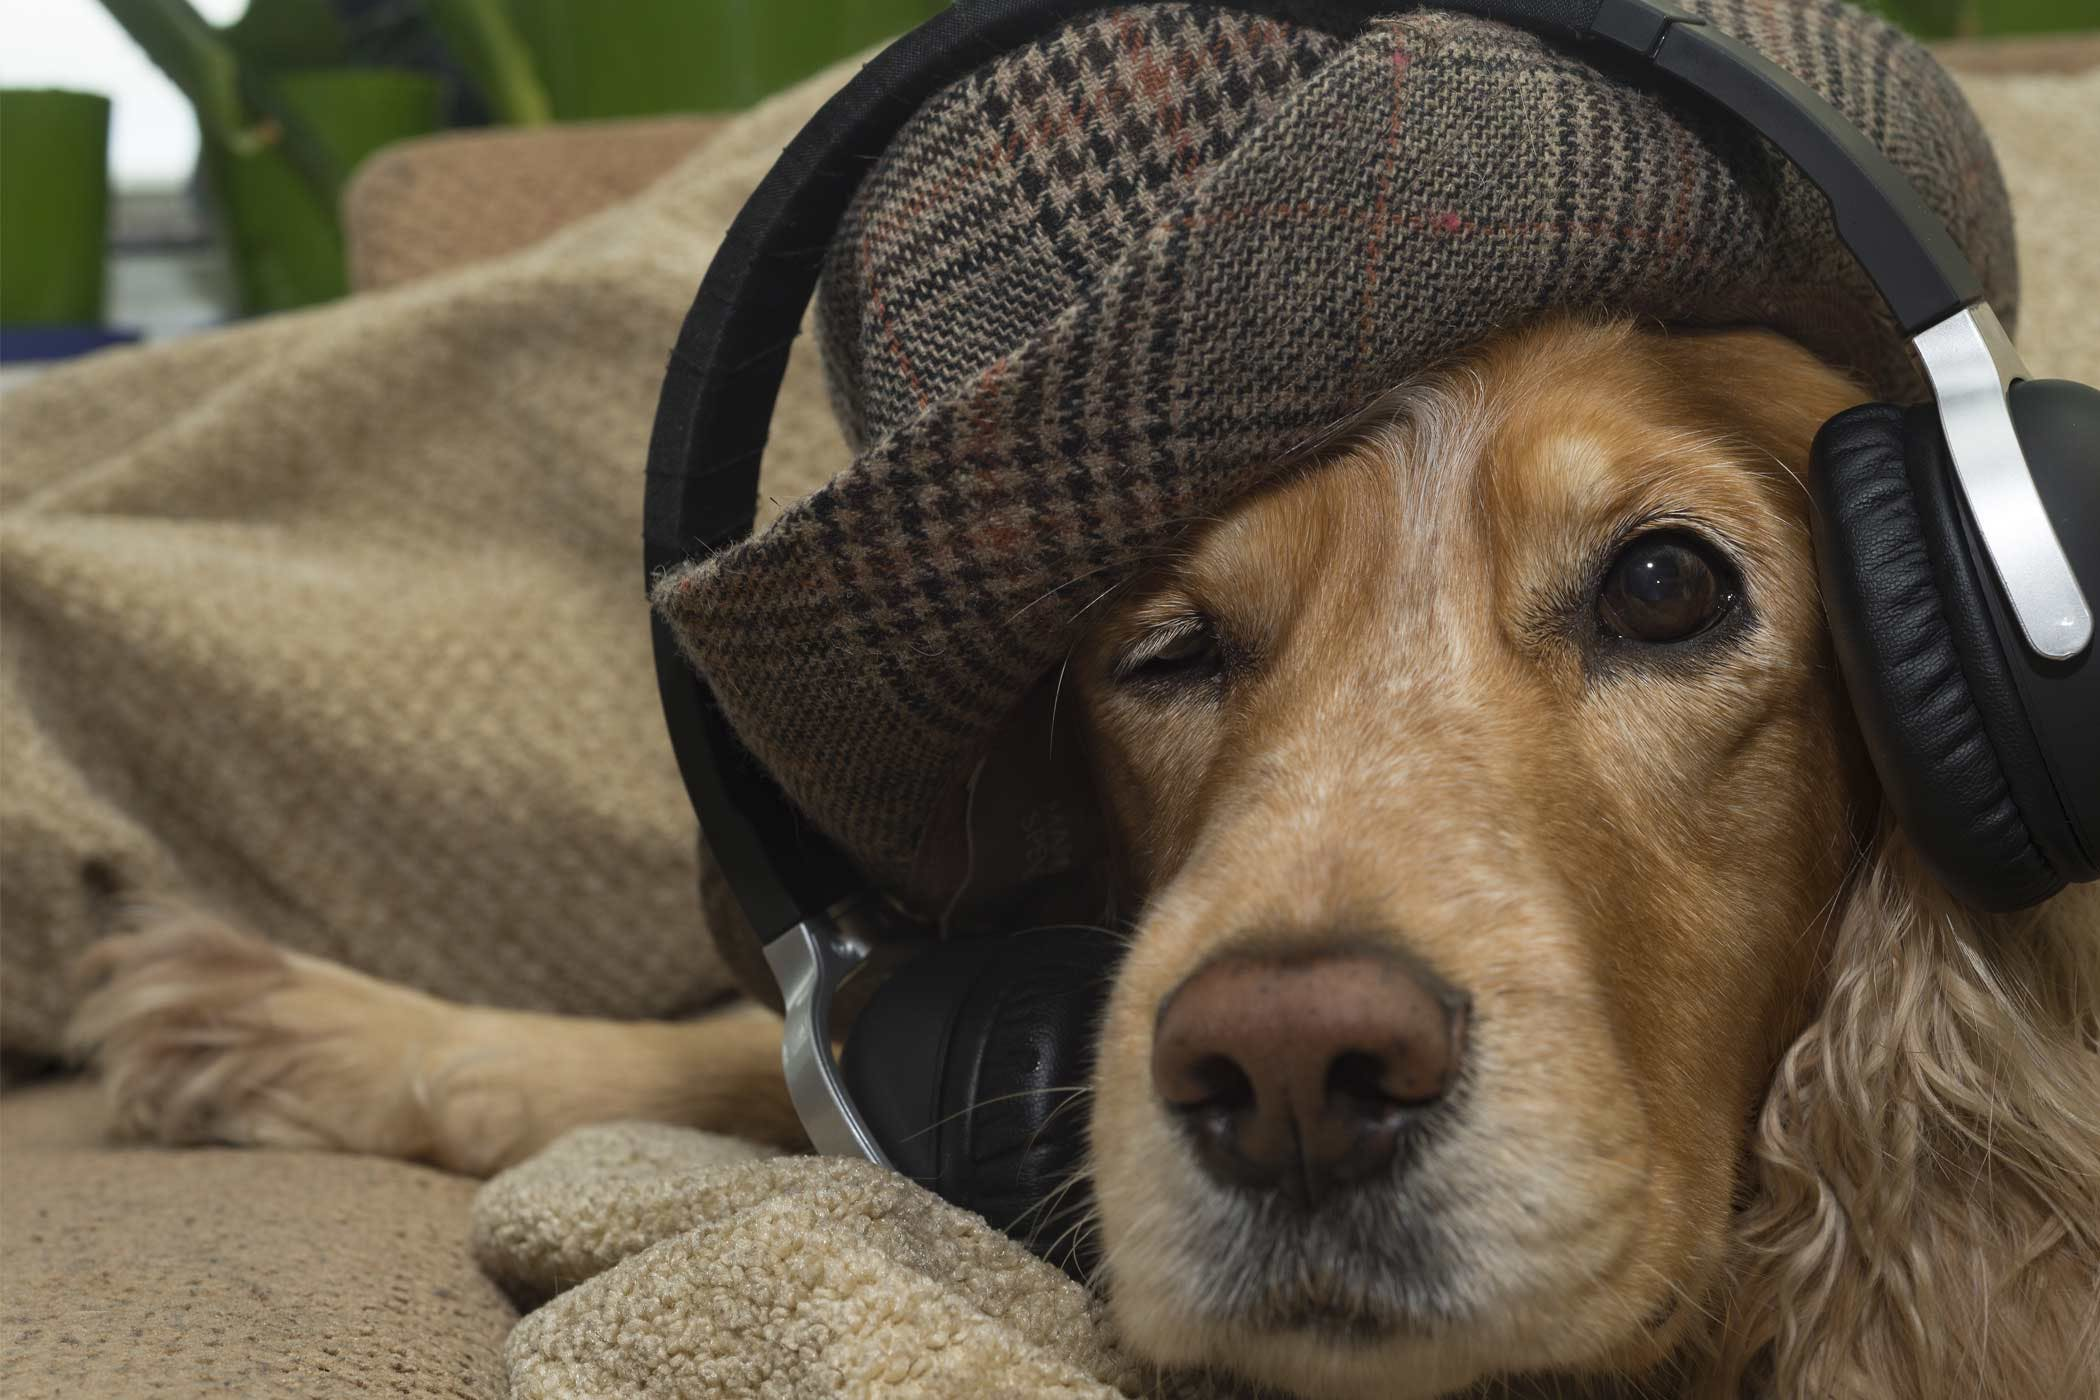 How to Train Your Dog to Ignore Loud Noises